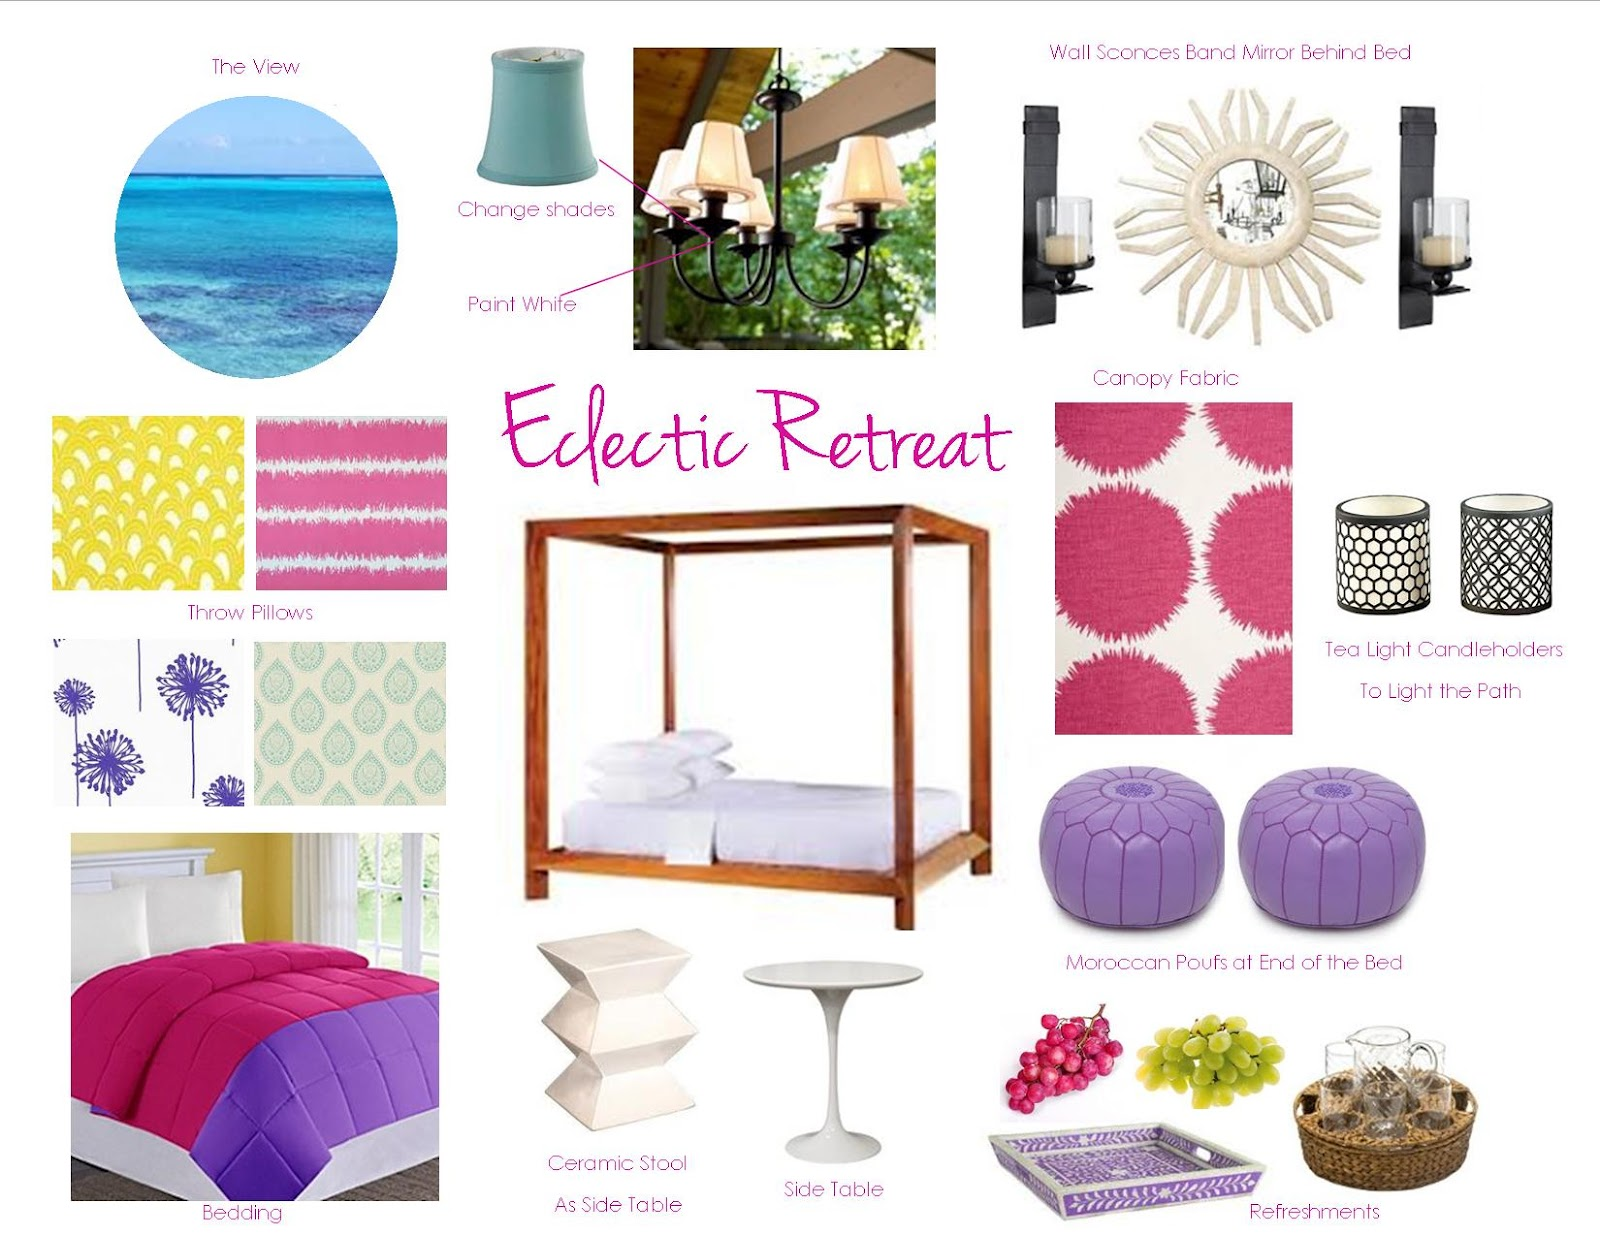 An Eclectic Retreat